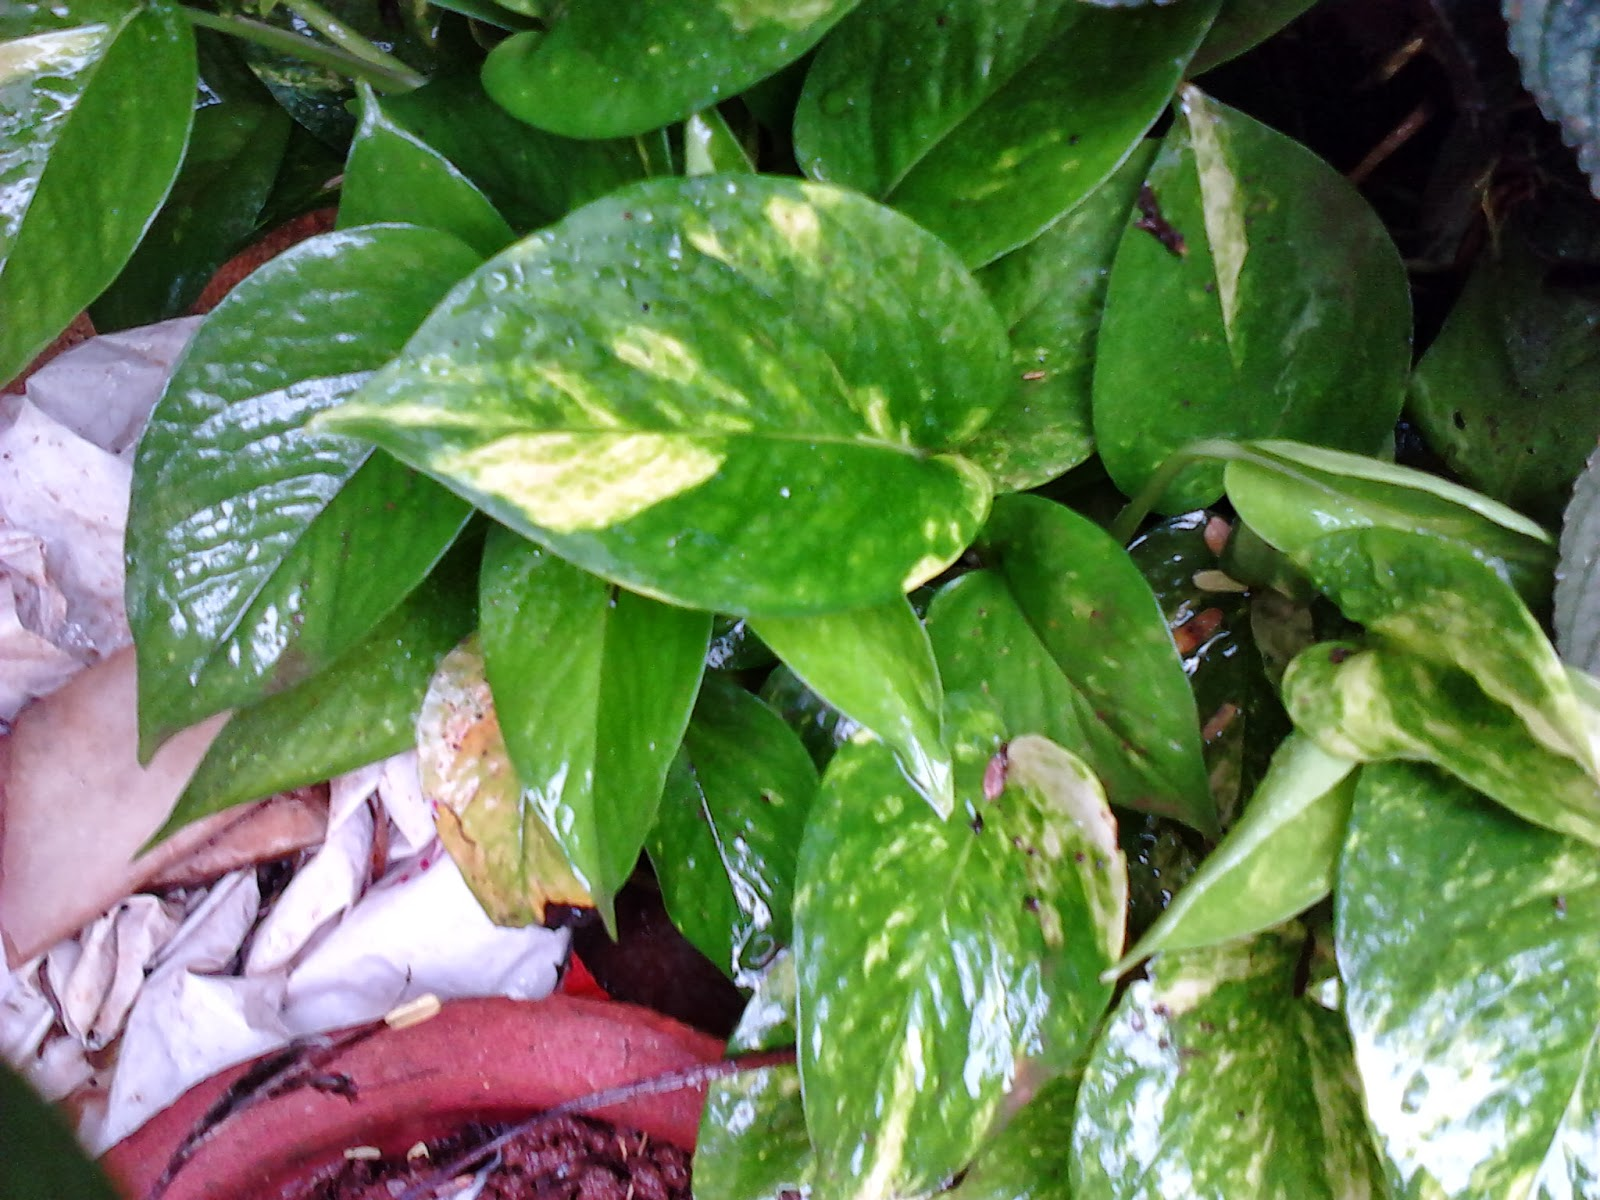 Garden care simplified why money plant rules as feng shui - Good luck plants feng shui ...